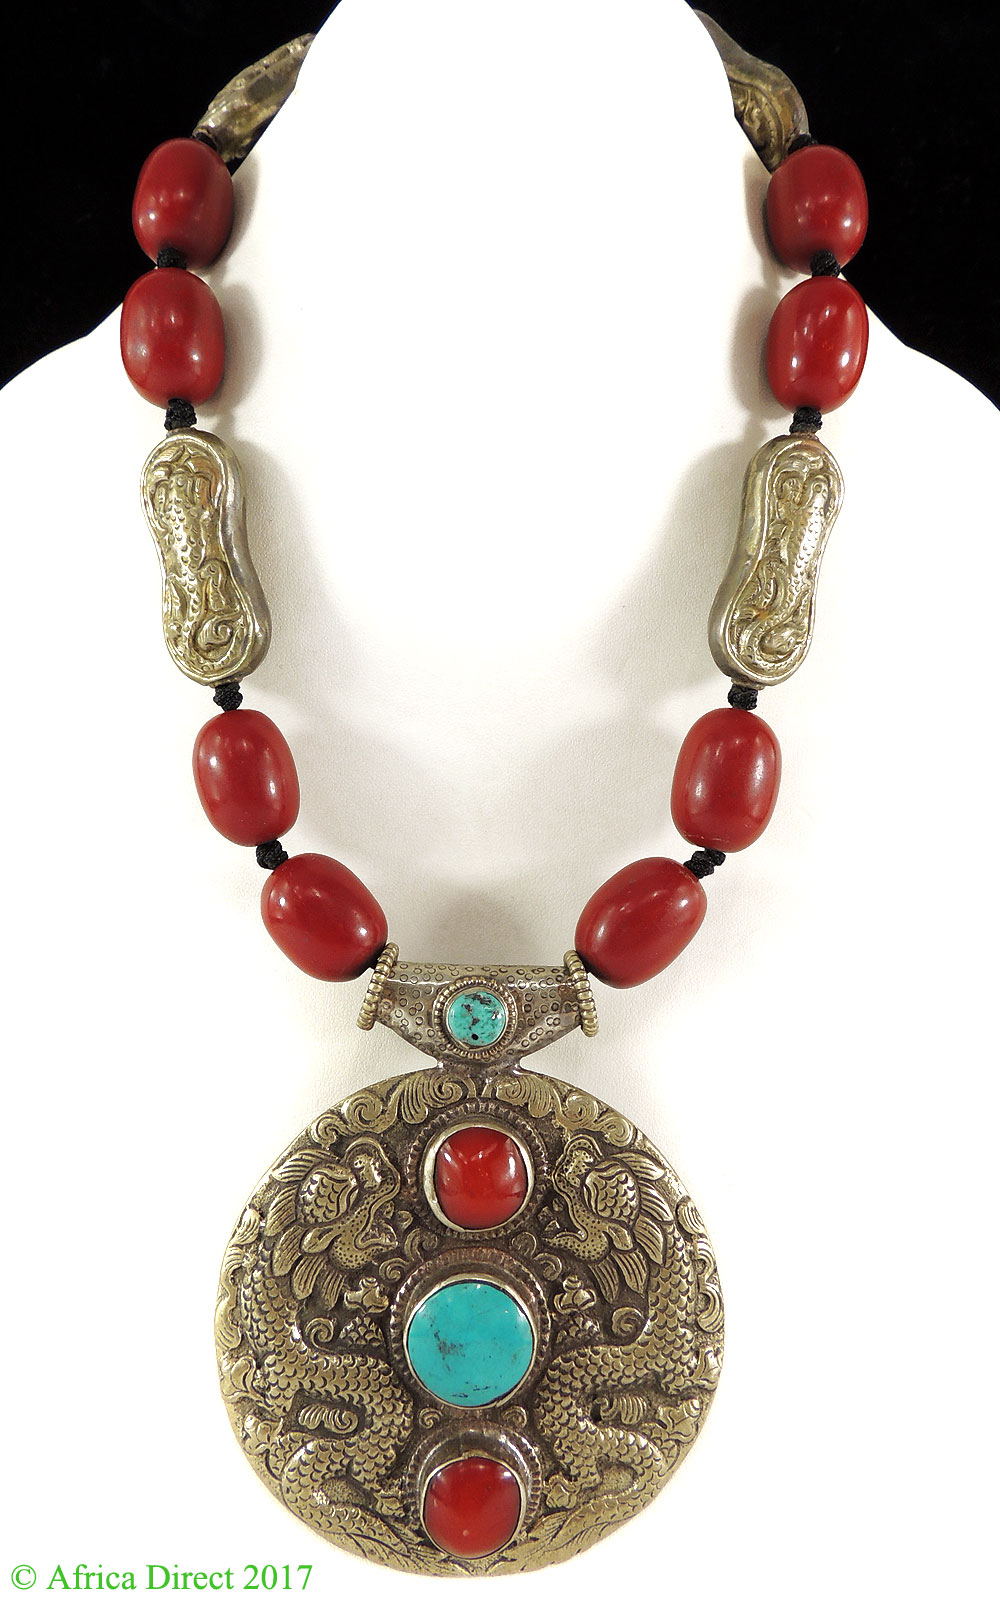 Tibetan Necklace Silver Repoussee Pendant Turquoise Red Beads by